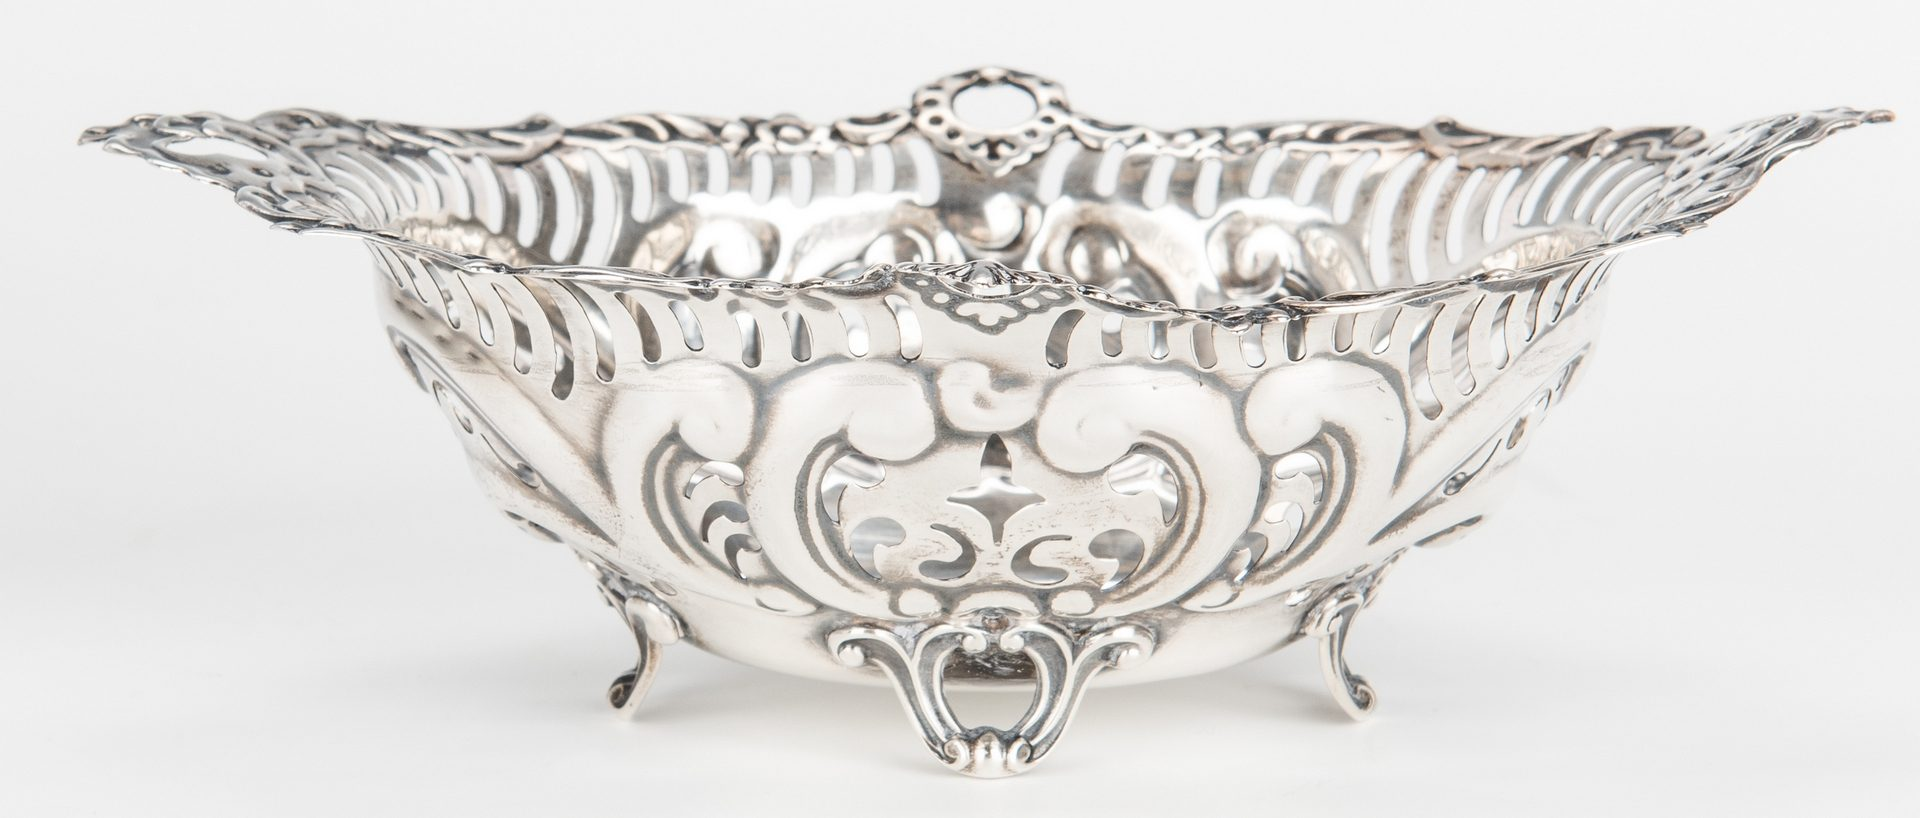 Lot 420: Pairpoint Silver Plateau & Gorham Sterling Nut Dish, 2 items